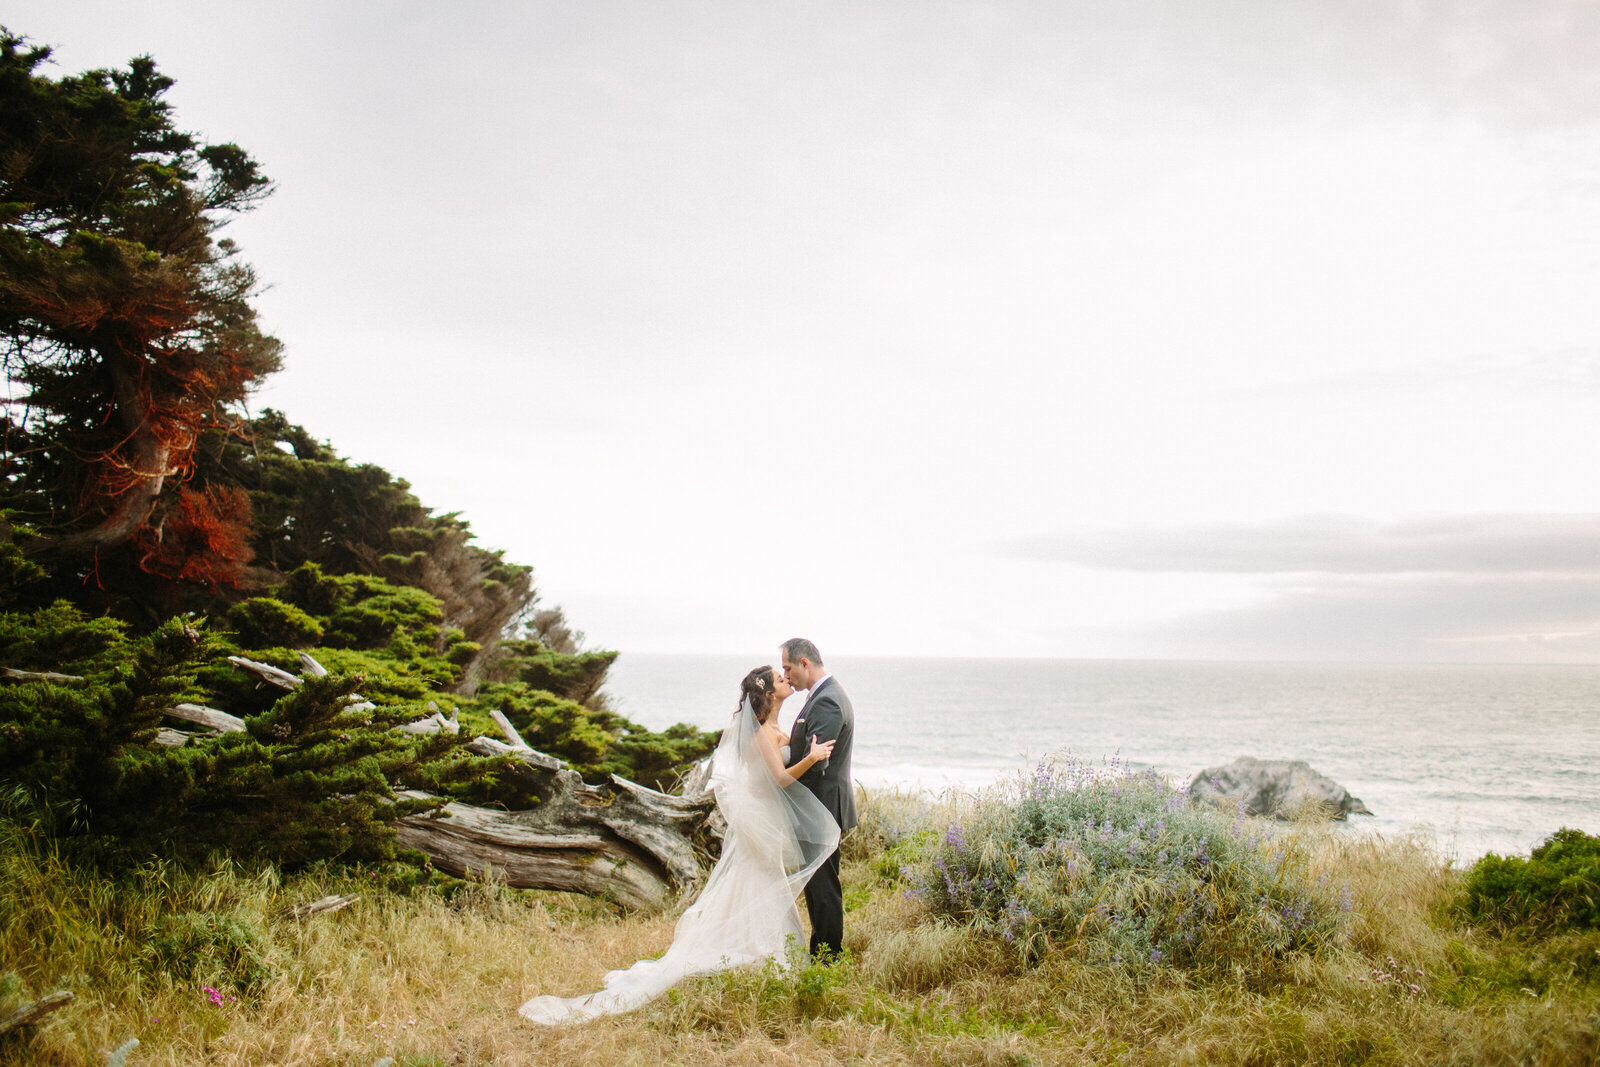 larissa-cleveland-elope-eleopement-intimate-wedding-photographer-san-francisco-napa-carmel-062